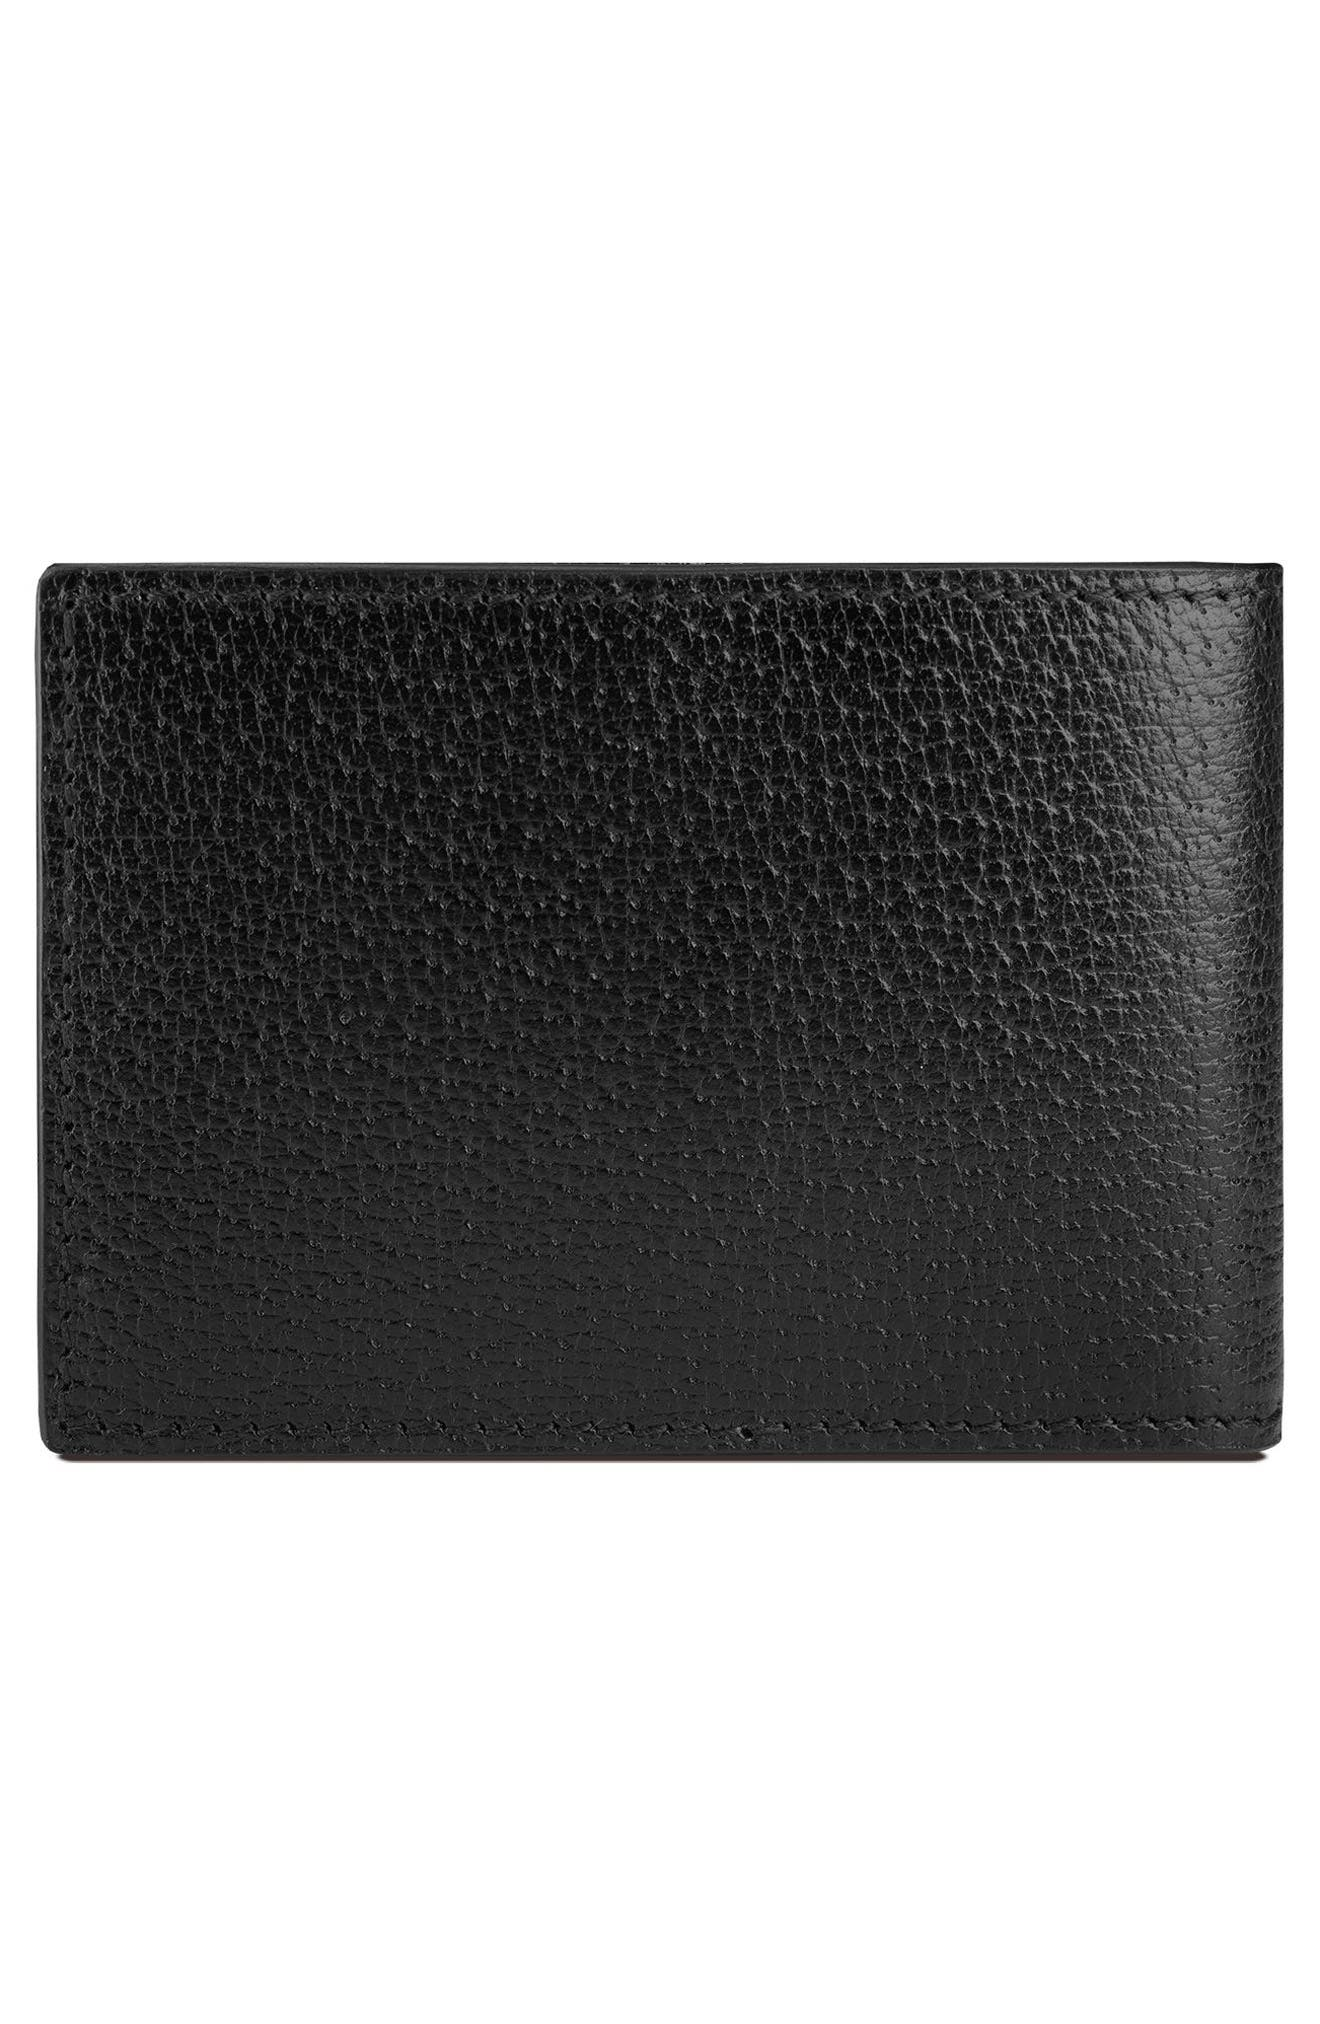 Marmont Leather Wallet,                             Alternate thumbnail 7, color,